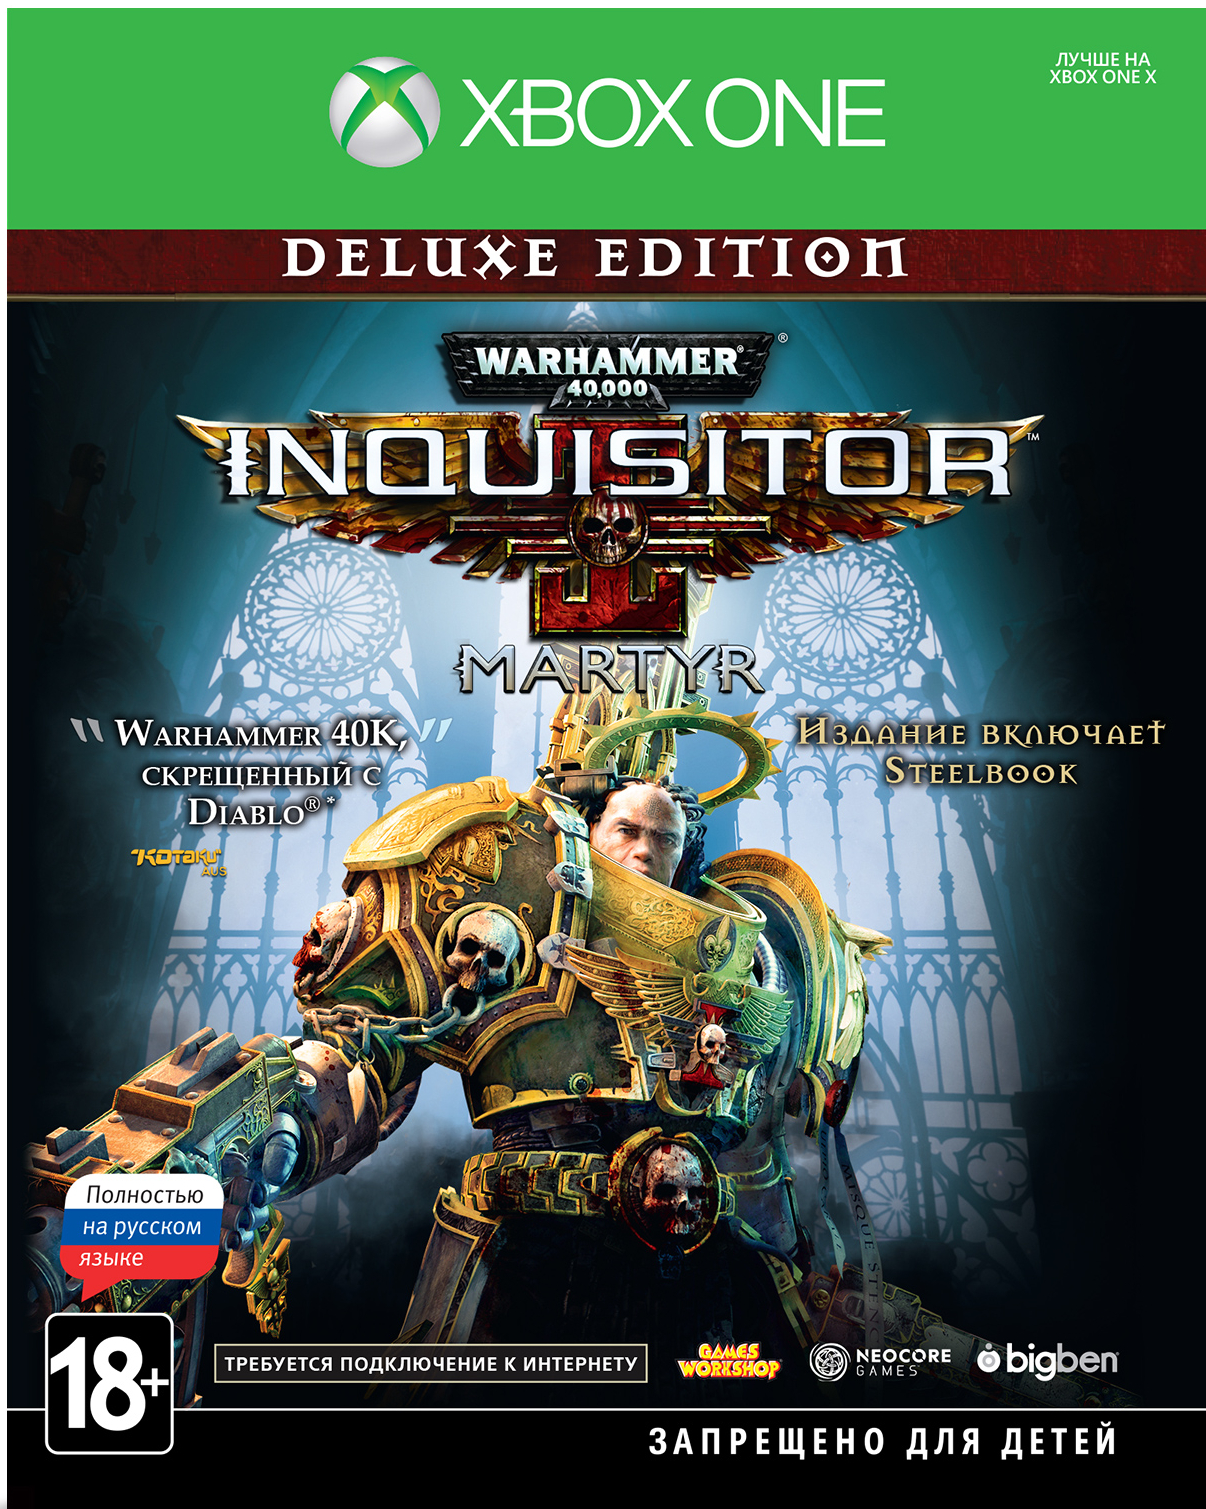 Warhammer 40,000: Inquisitor – Martyr. Deluxe Edition [Xbox One] warhammer 40 000 inquisitor – martyr [ps4]